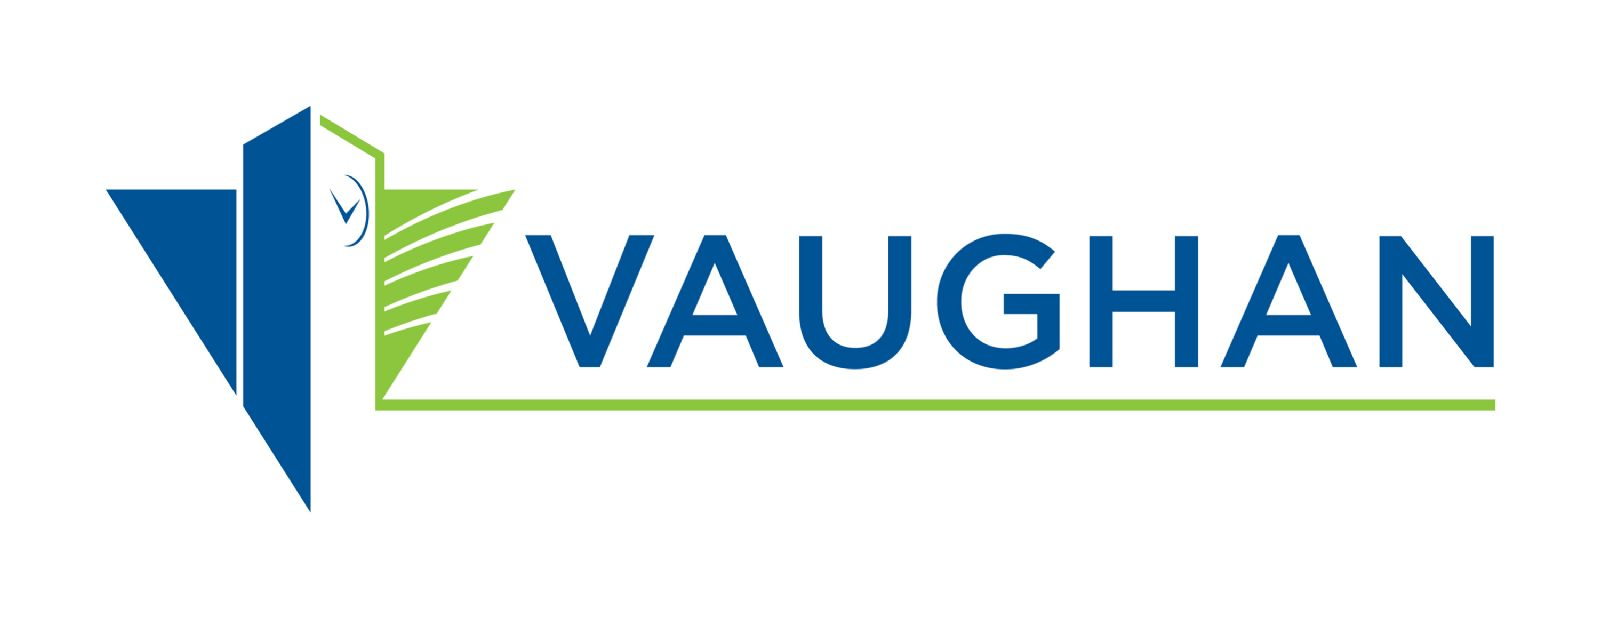 vaughan real estate for sale